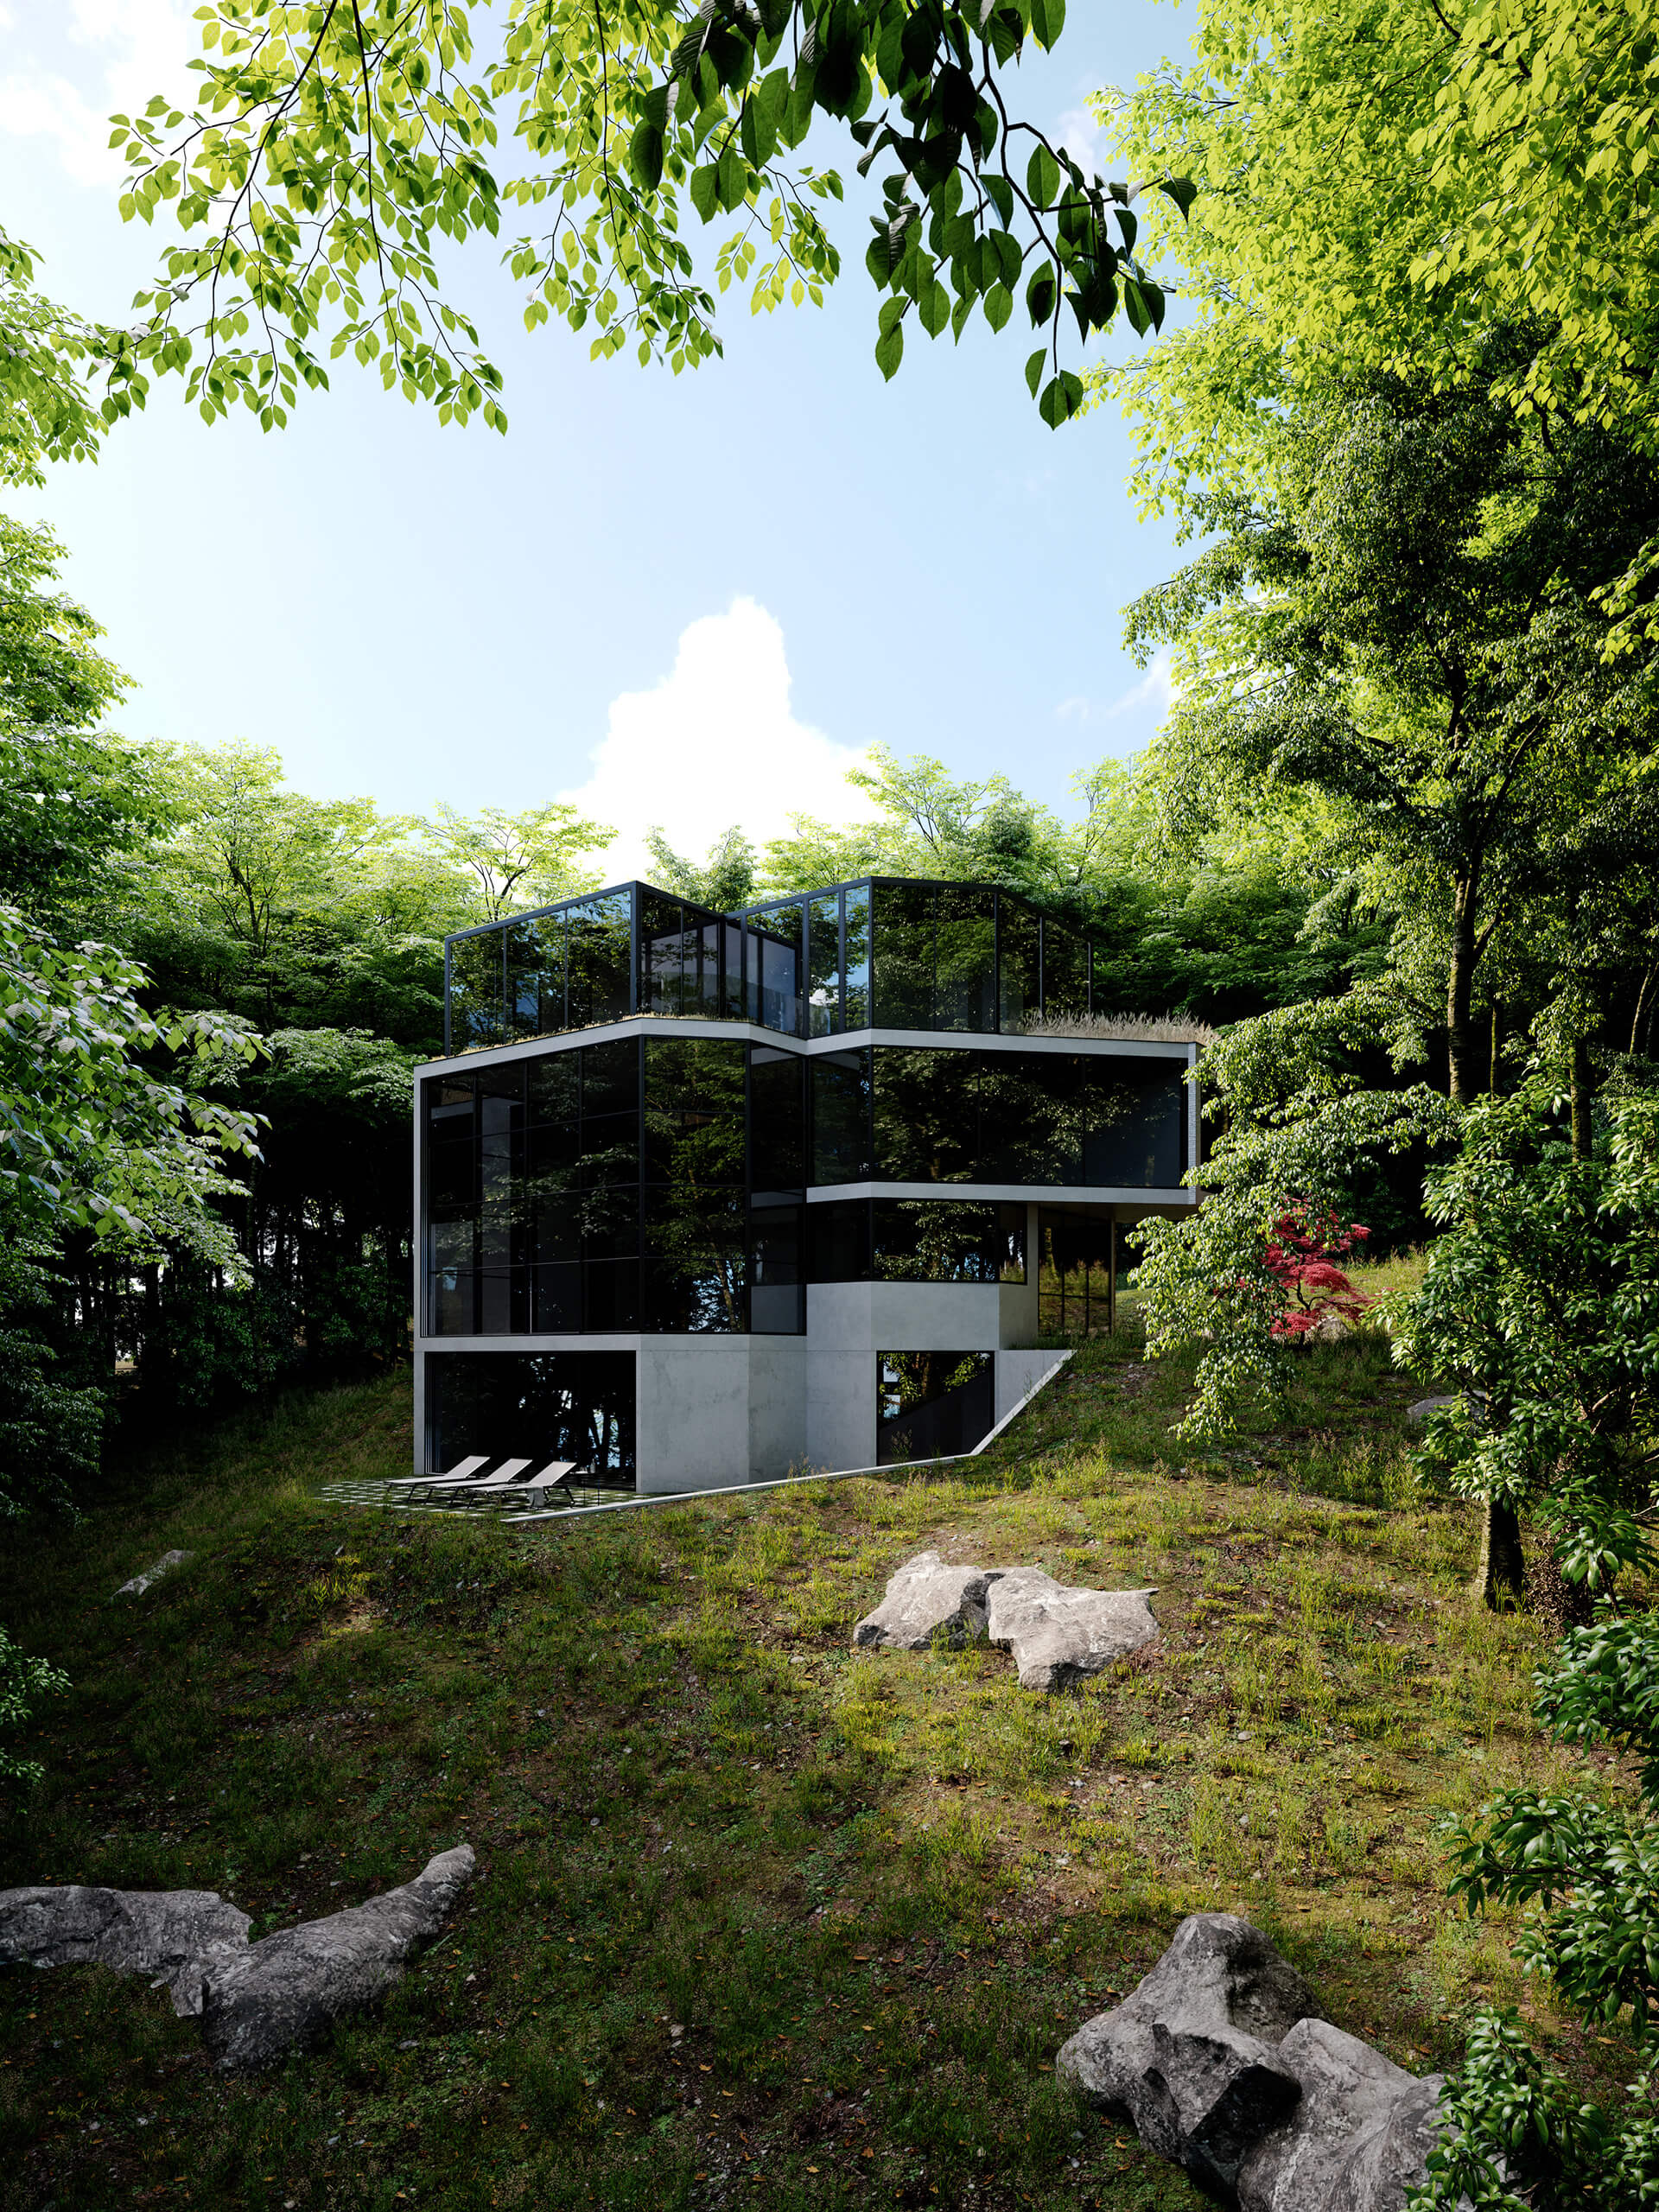 The rear façade of the Crestwood Residence that shows the slope of the hillside | Crestwood Residence by Ancerl Studio | STIRworld